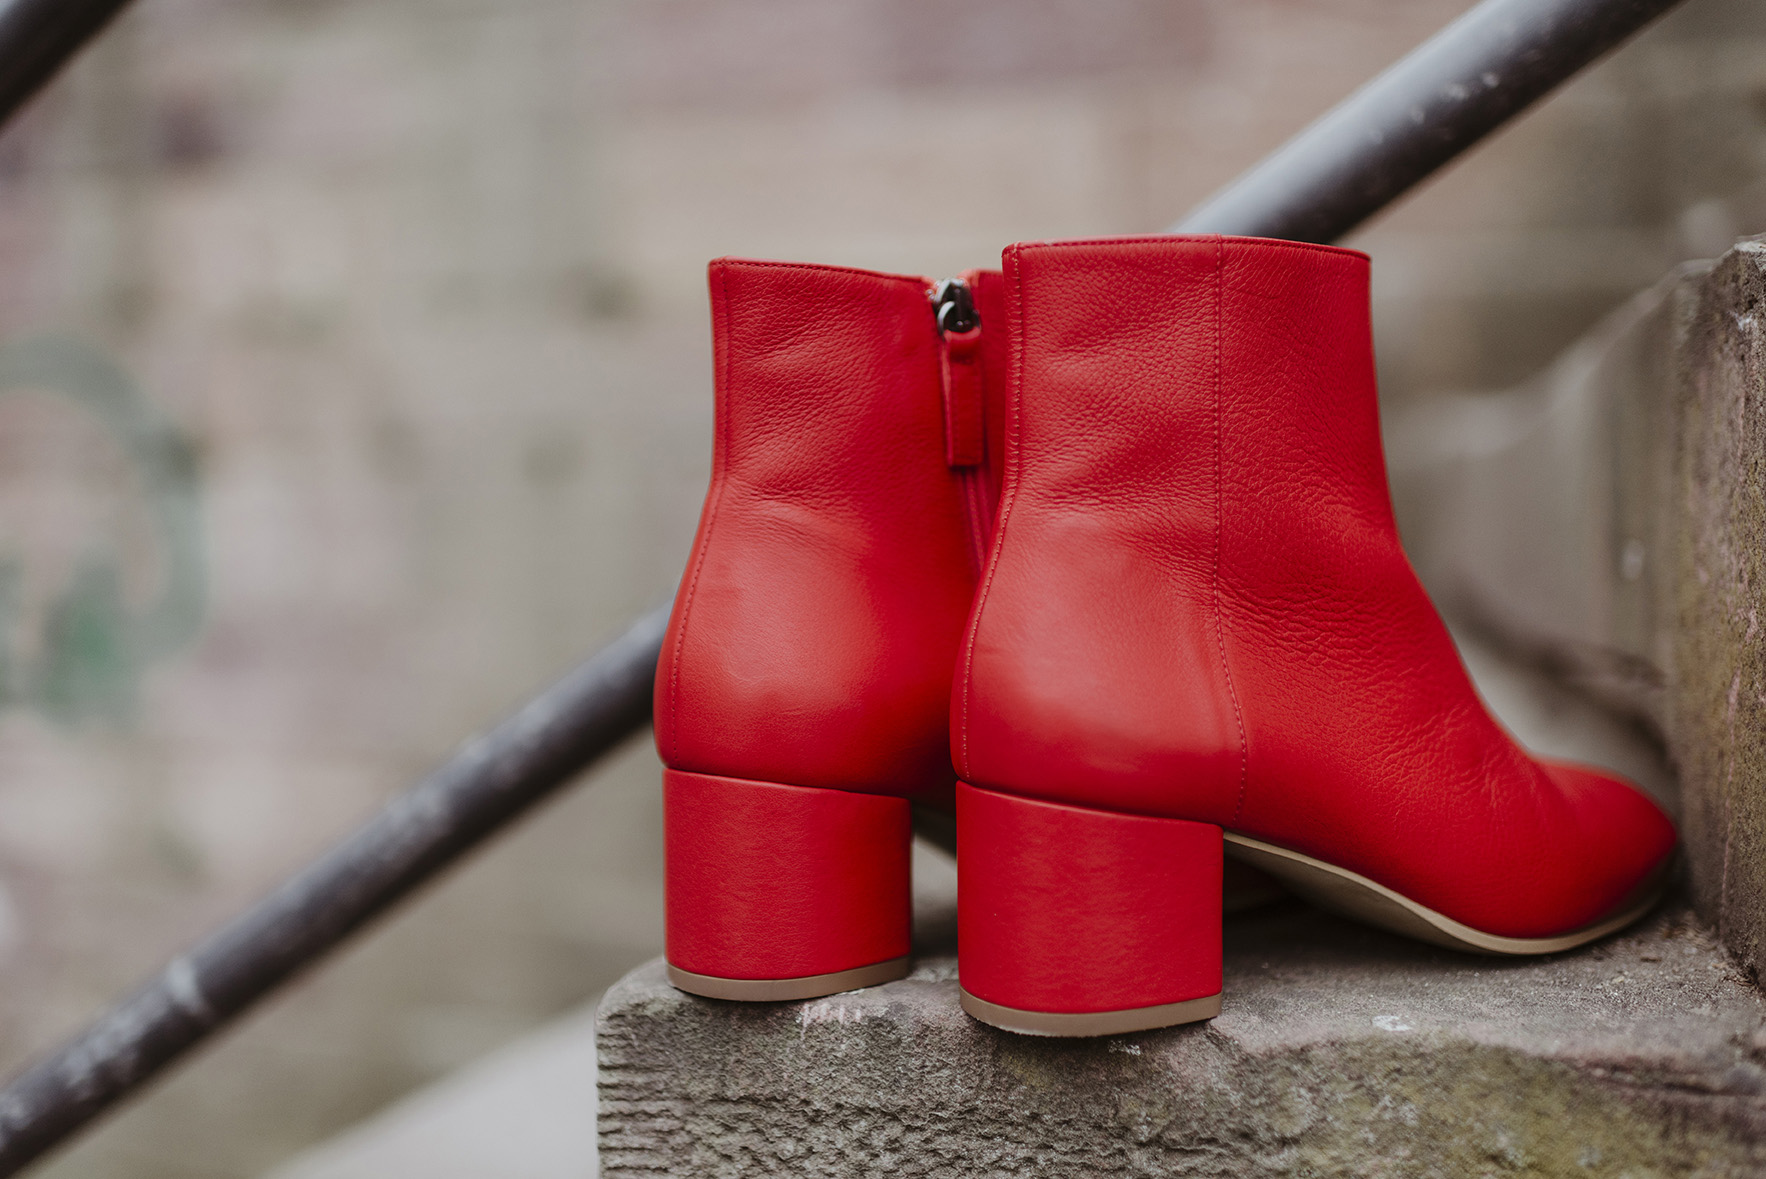 greenlooksgreat-ninetofive-red-boots_1